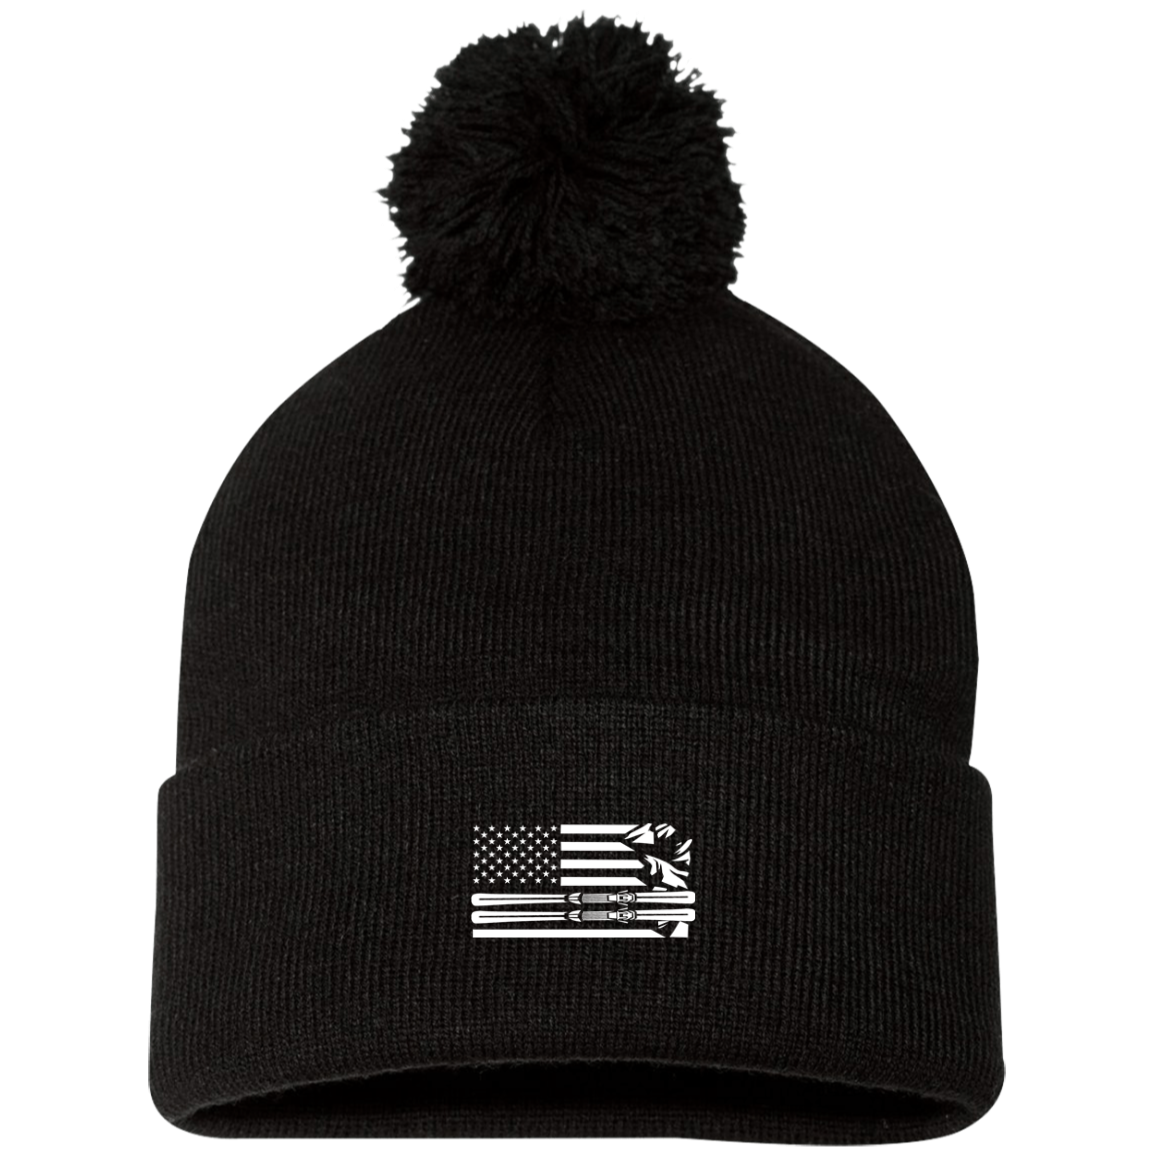 US Ski Flag All White Pom Pom Knit Cap - Powderaddicts